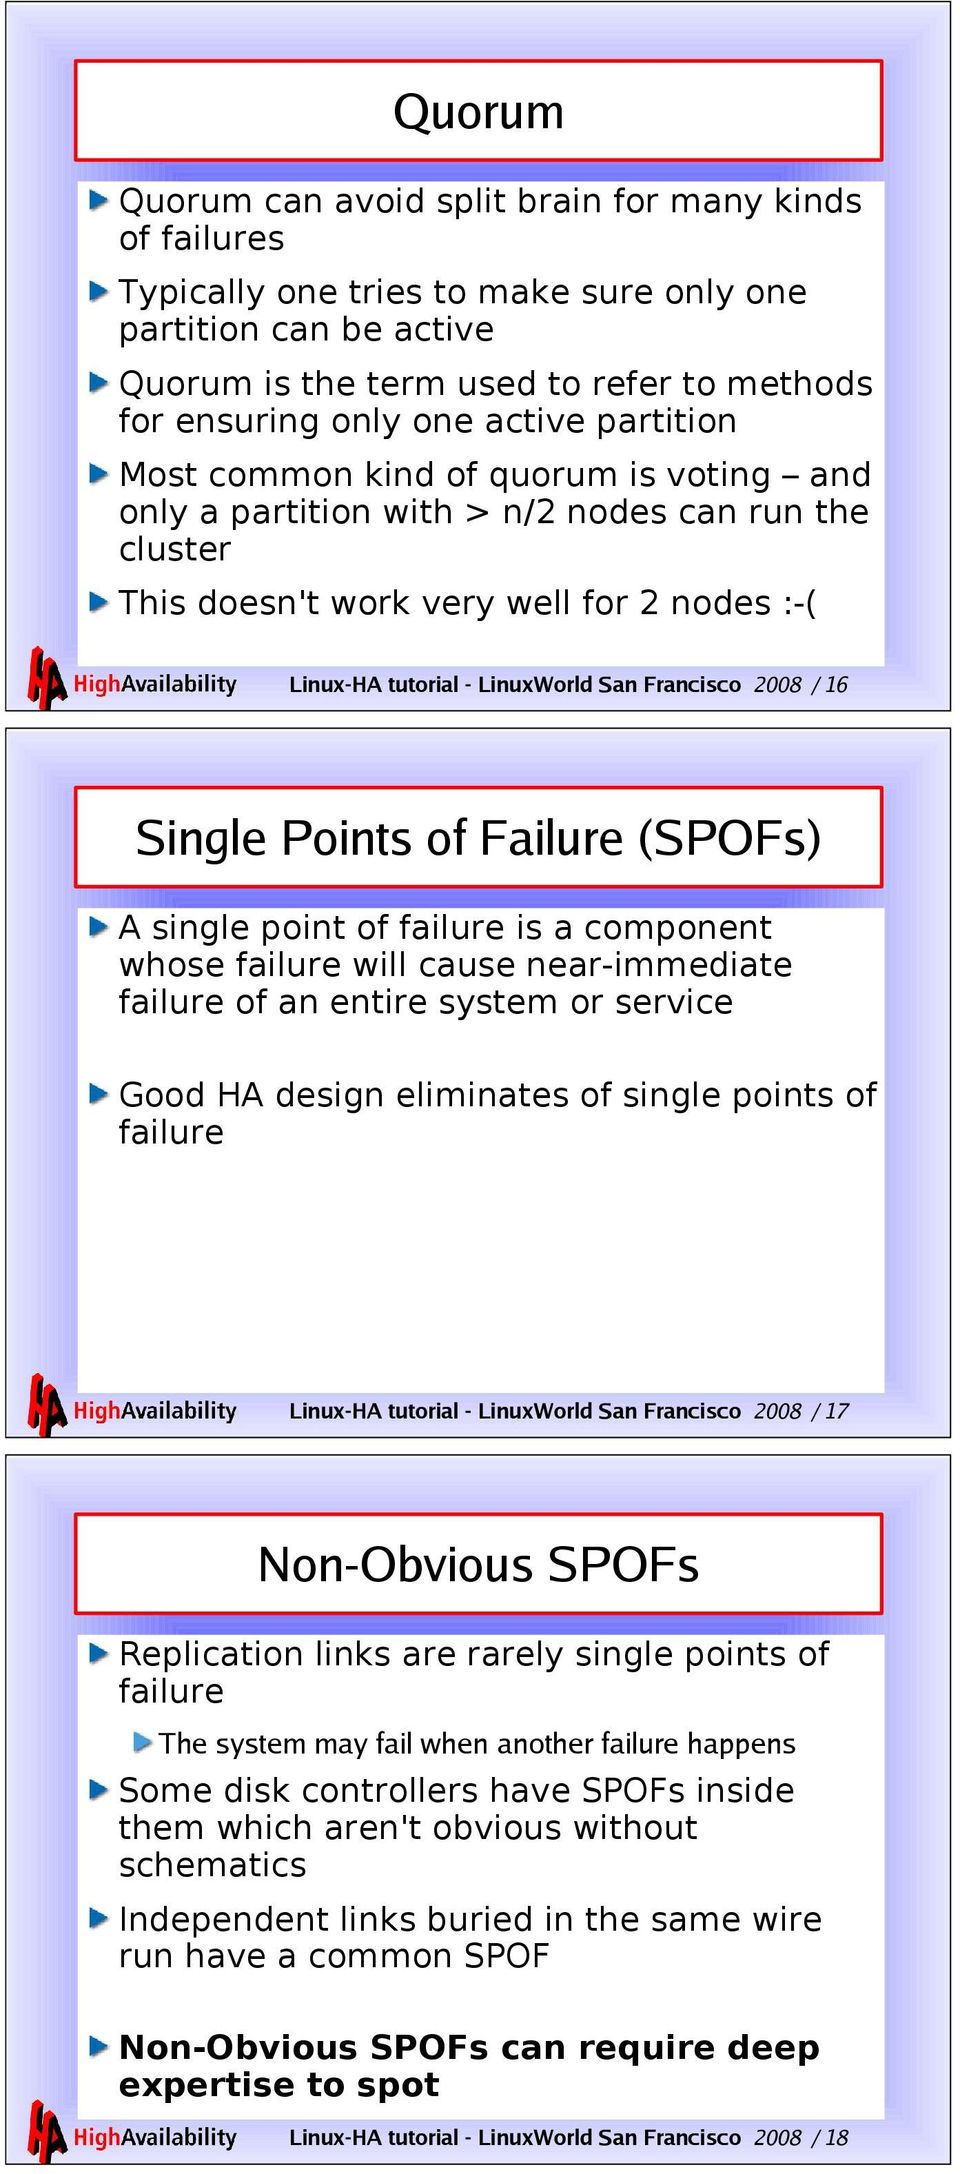 Francisco 2008 / 16 Single Points of Failure (SPOFs) A single point of failure is a component whose failure will cause near-immediate failure of an entire system or service Good HA design eliminates